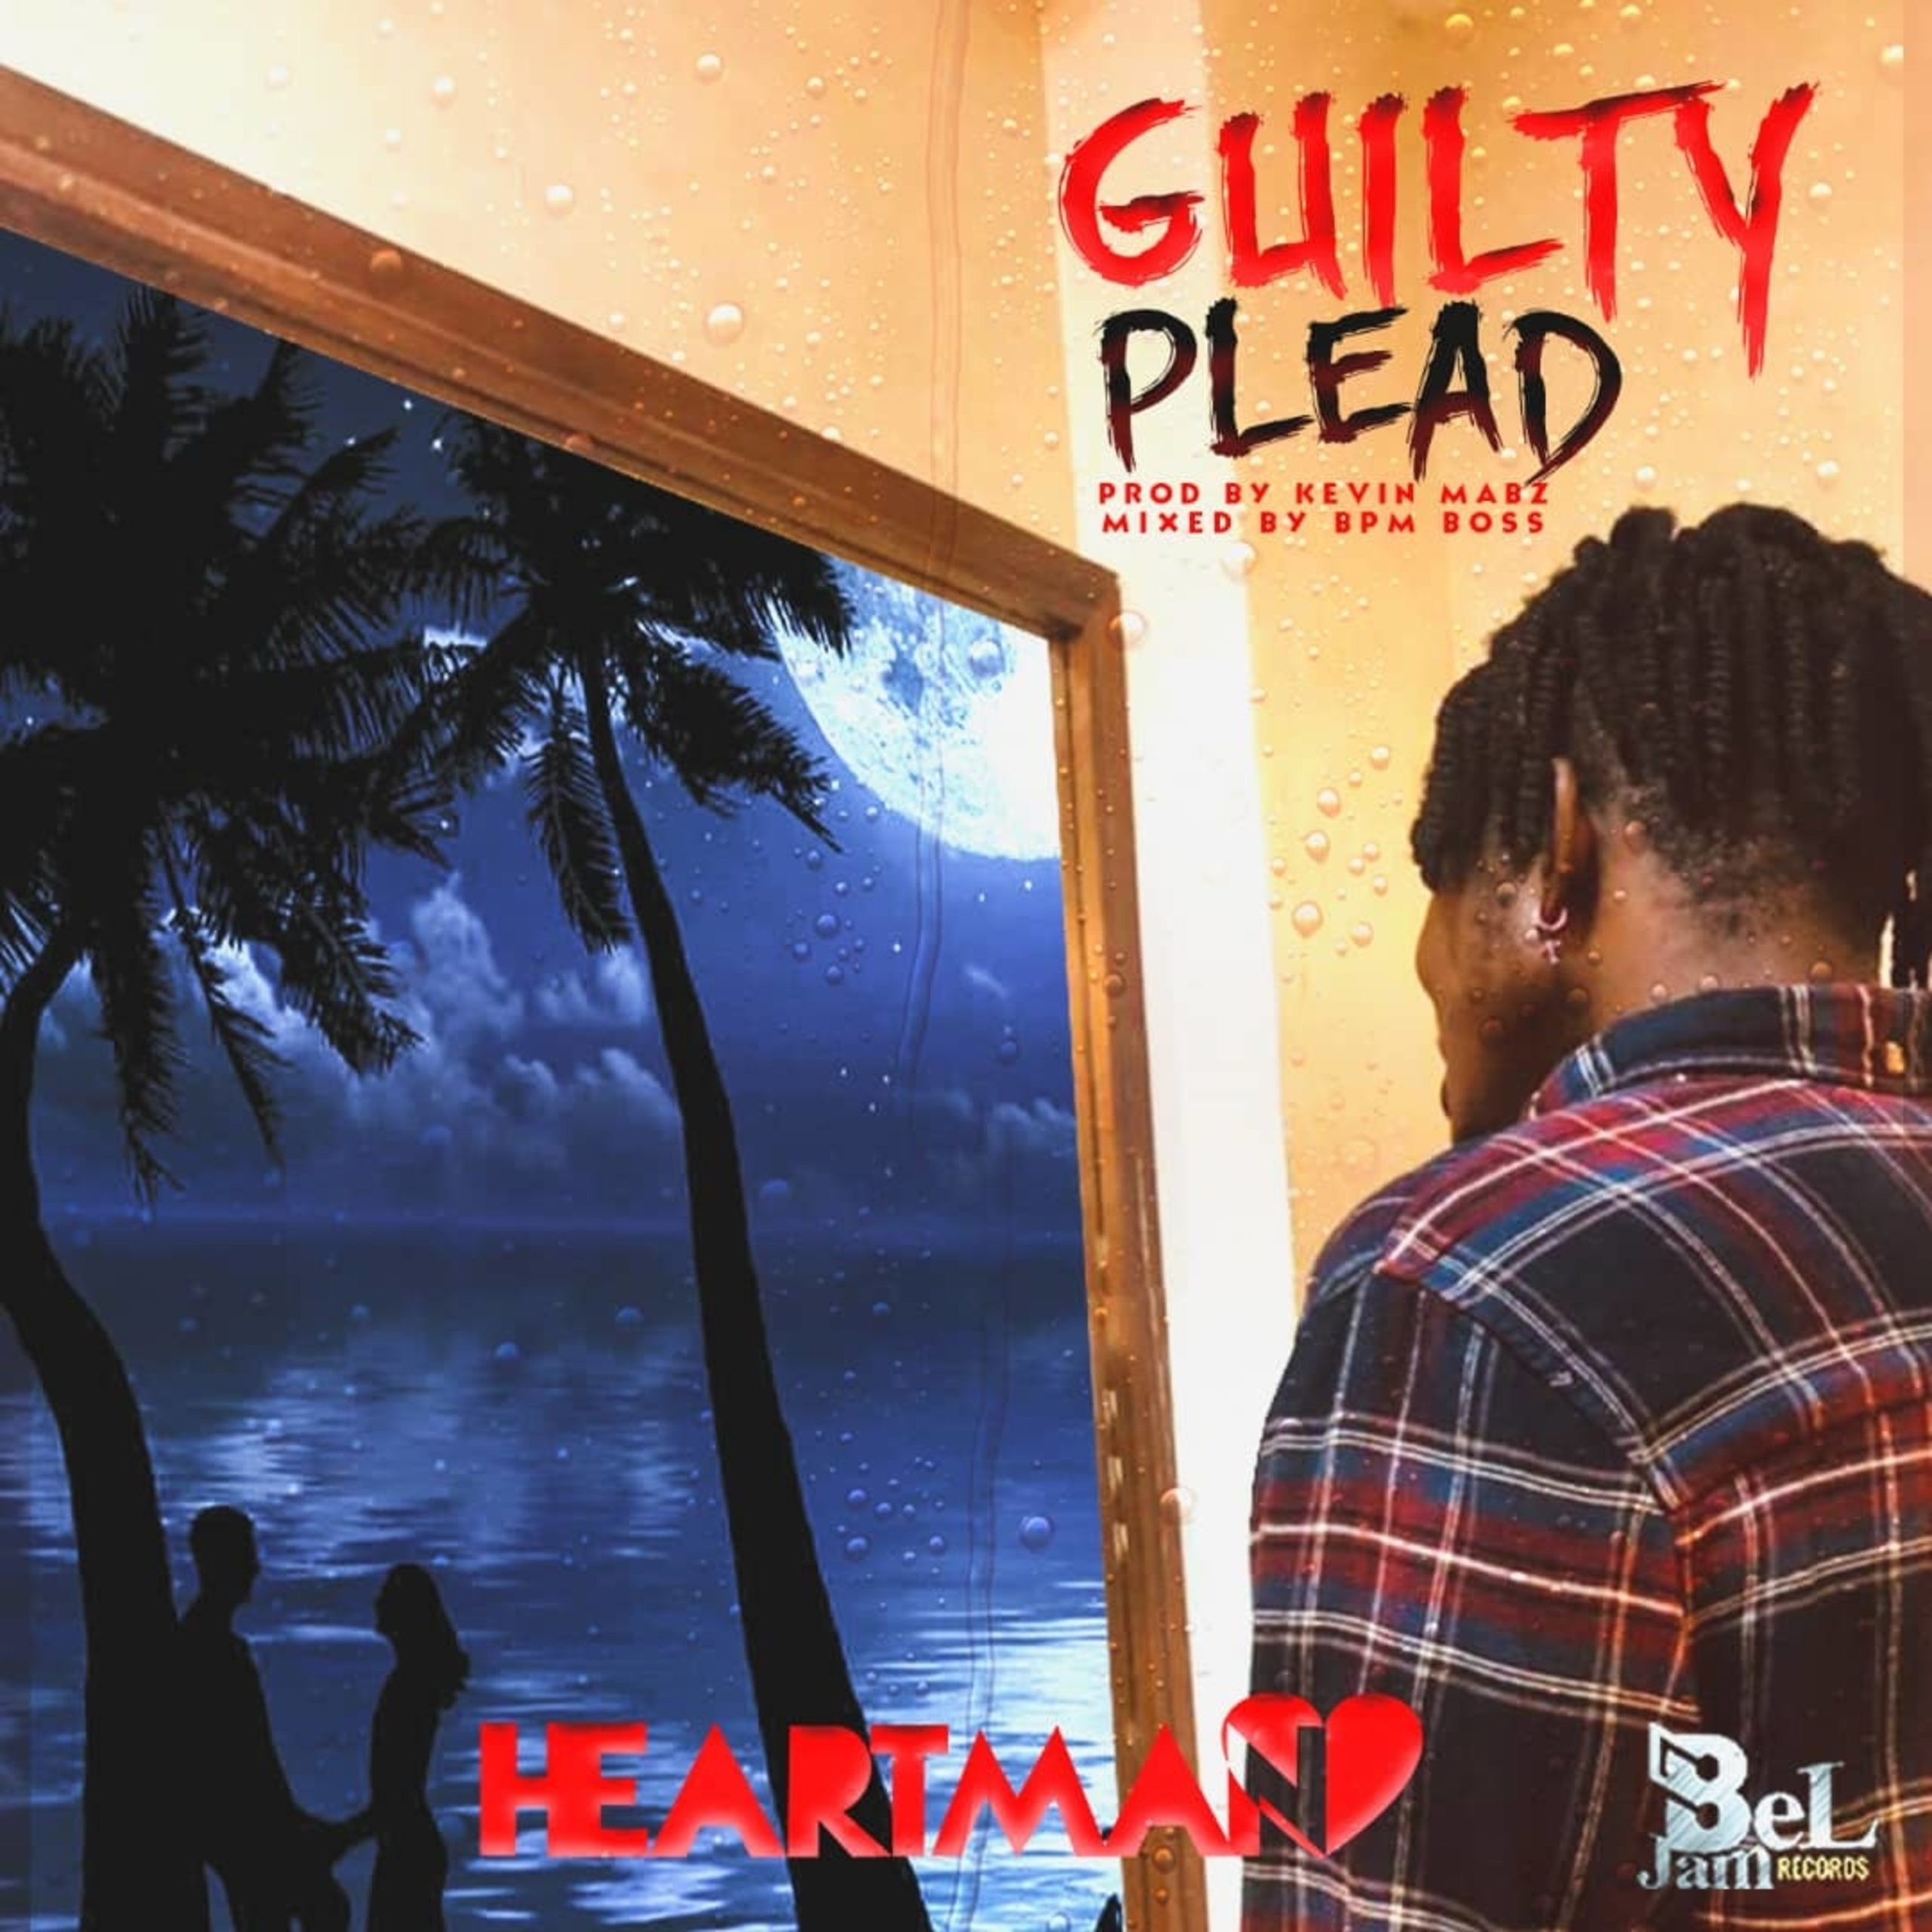 Heartman - Guilty Plead (Freestyle) (Prod by Kevin Mabz)